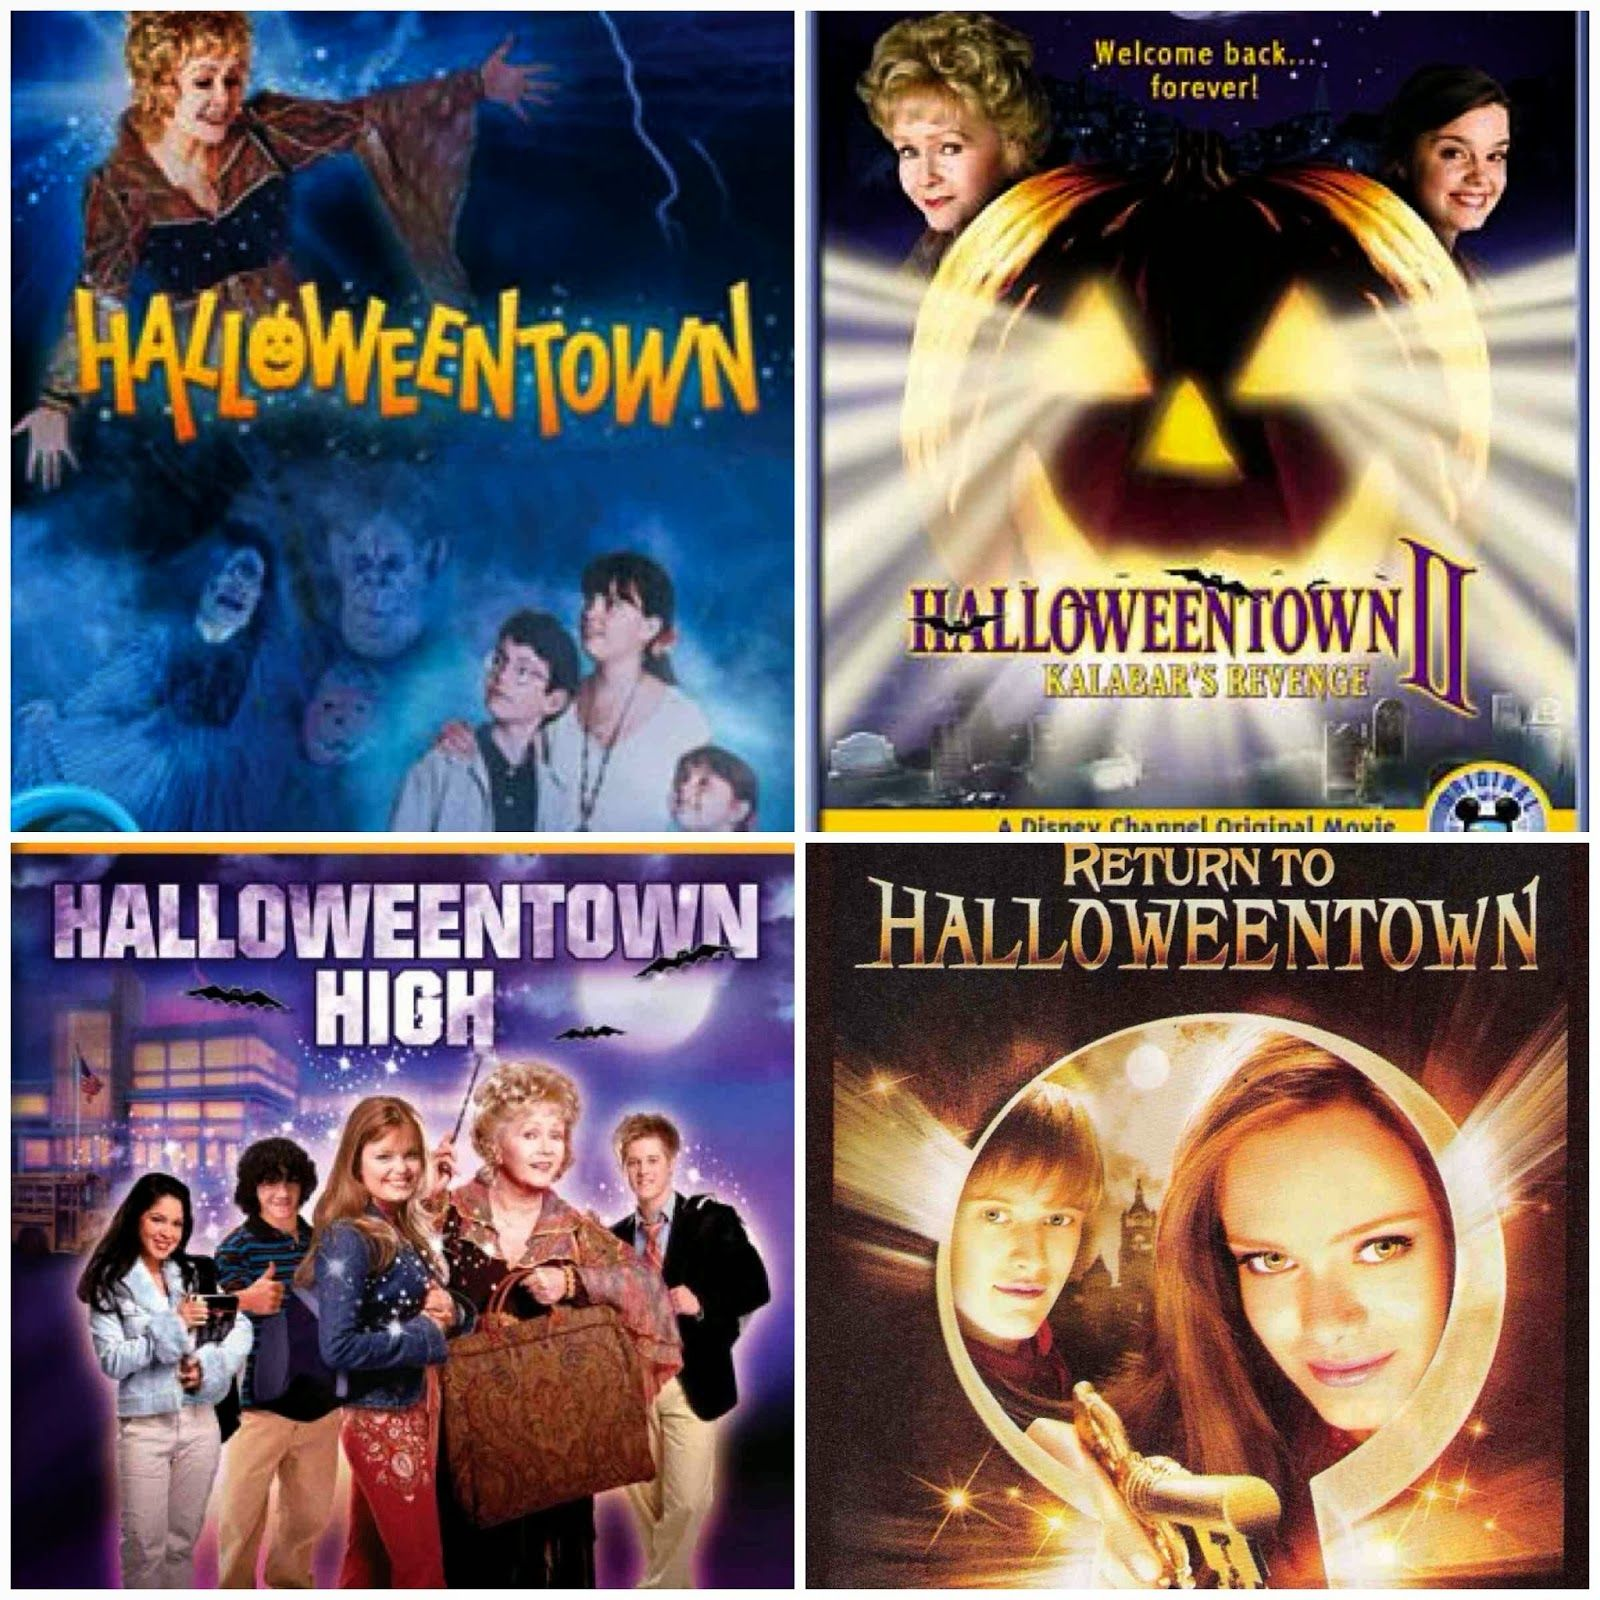 All the halloweentown movies in order